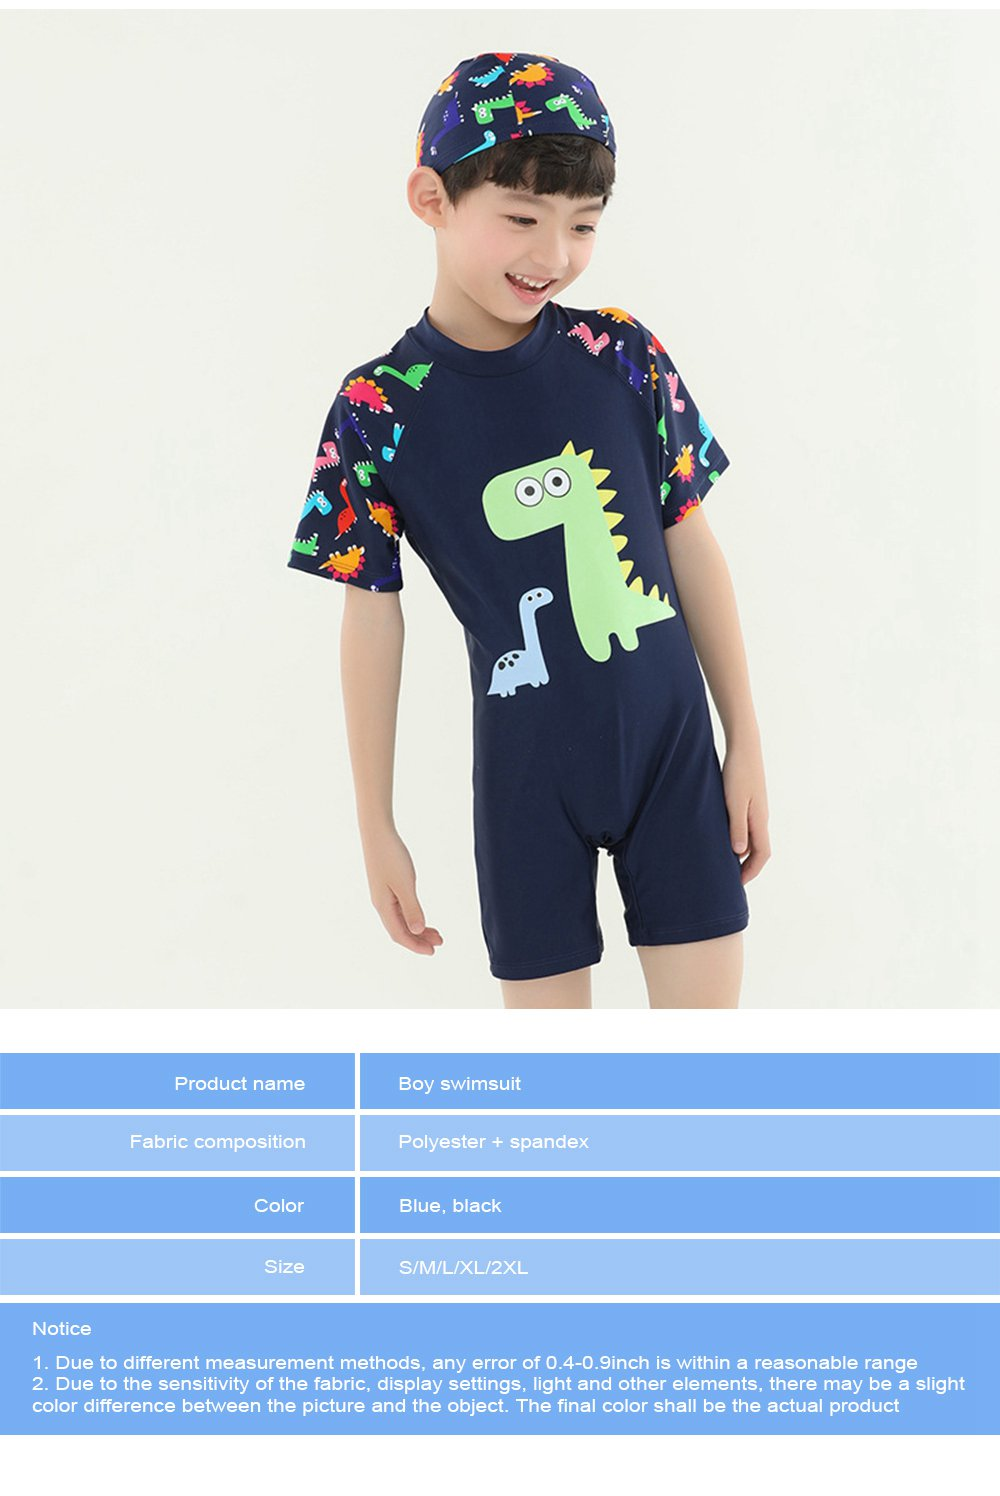 Little Boys One Piece Sunsuit Cute Short Sleeve Surfing Swimsuit Dinosaur Monster Children's Swimsuit with High Elasticity 7